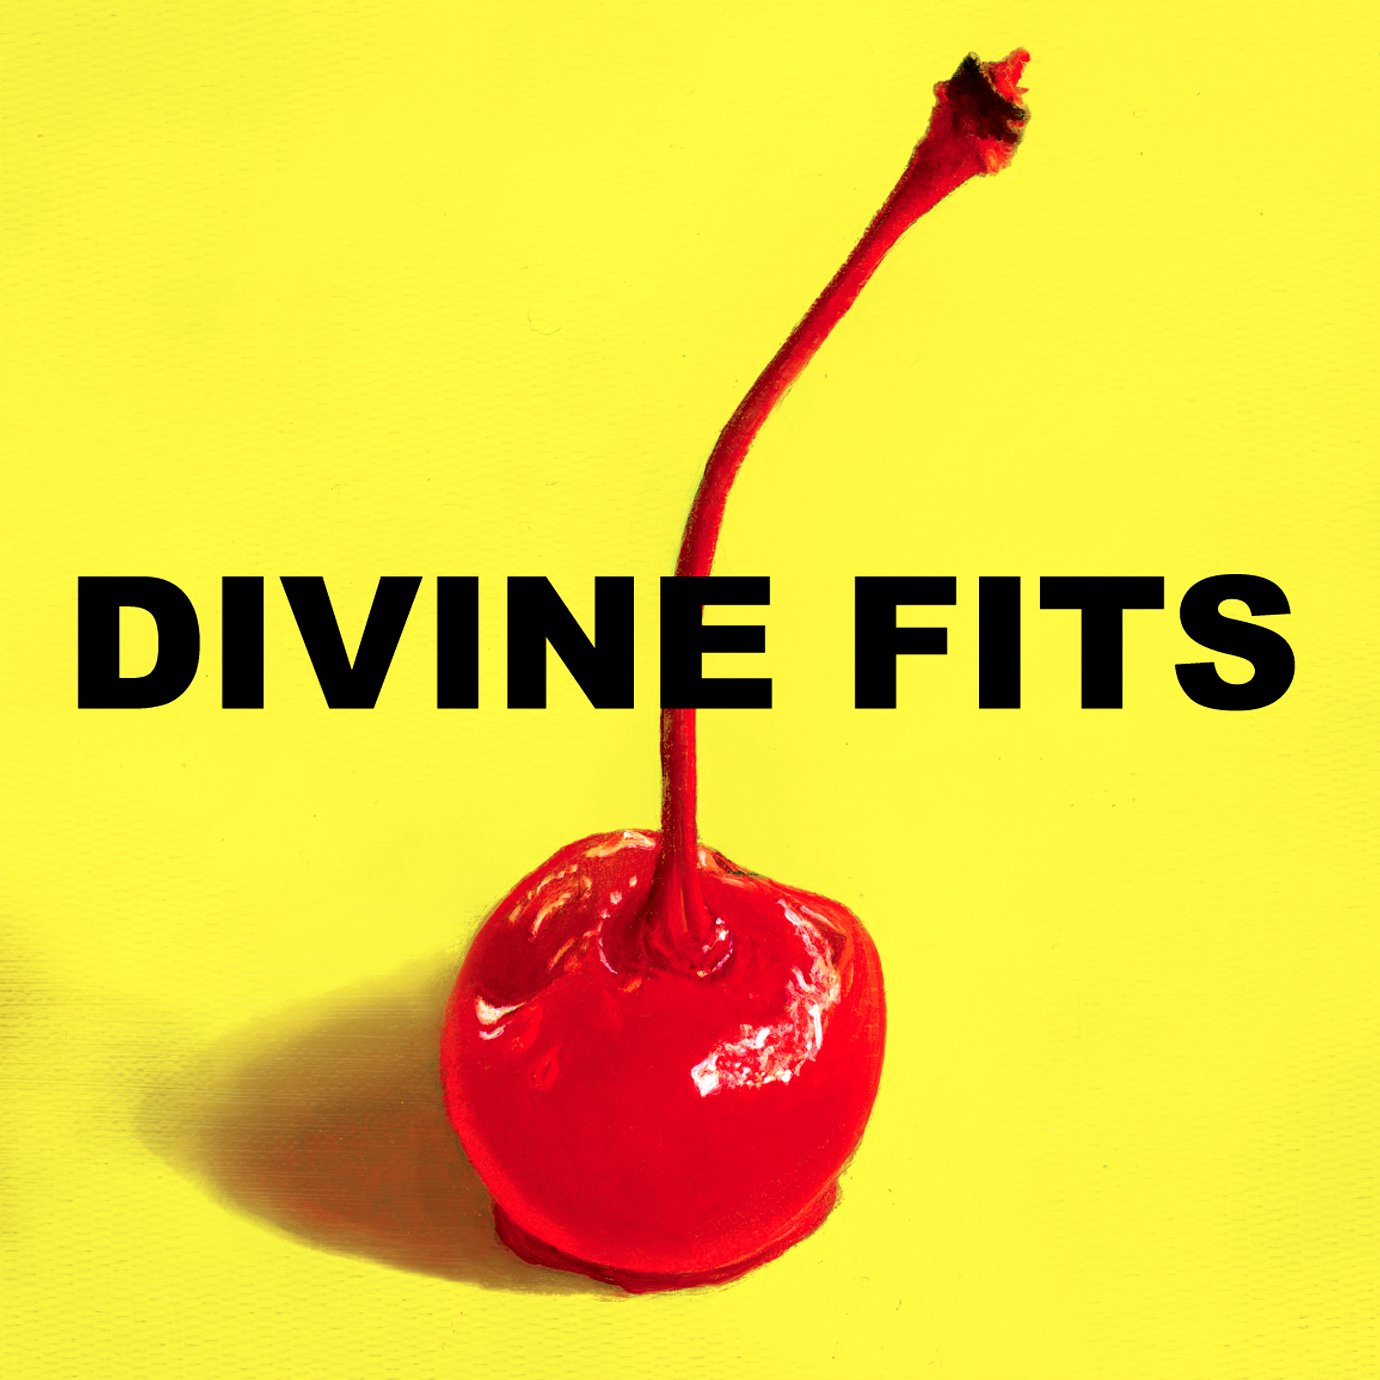 Divine Fits, A Thing Called Divine Fits